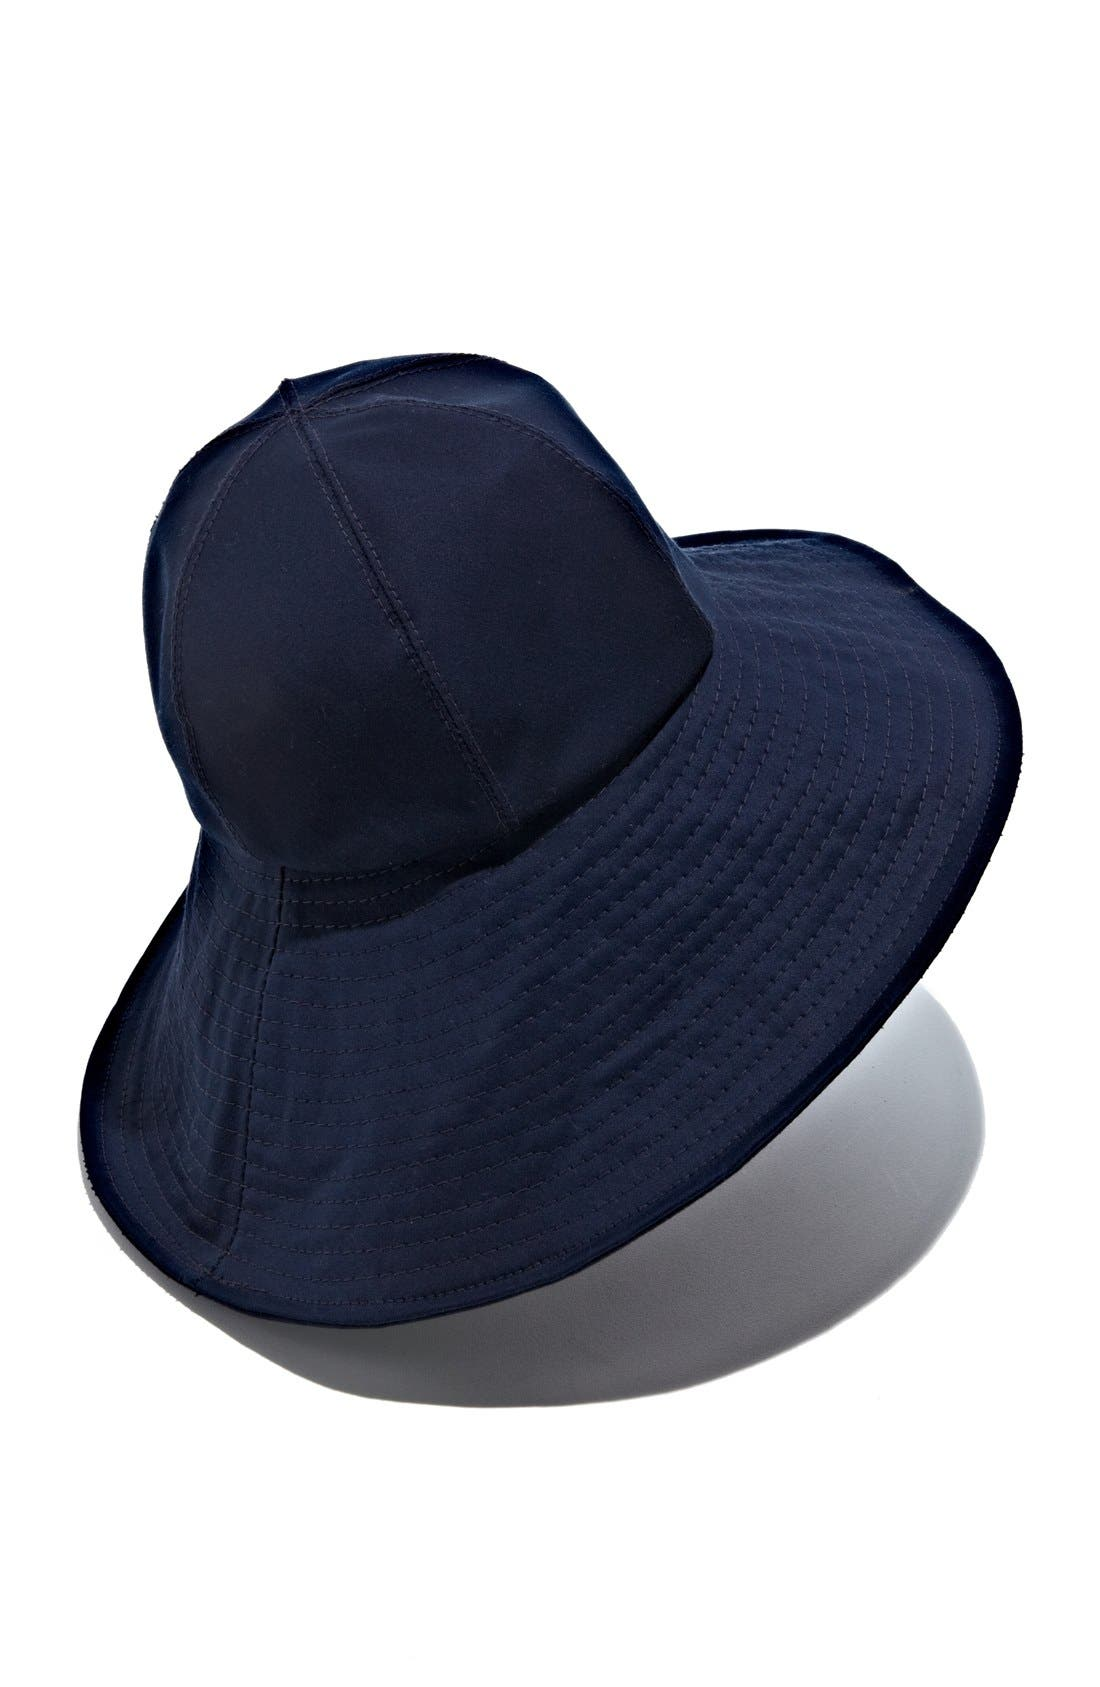 Alternate Image 1 Selected - Yestadt Millinery 'Vista' Fisherman Hat